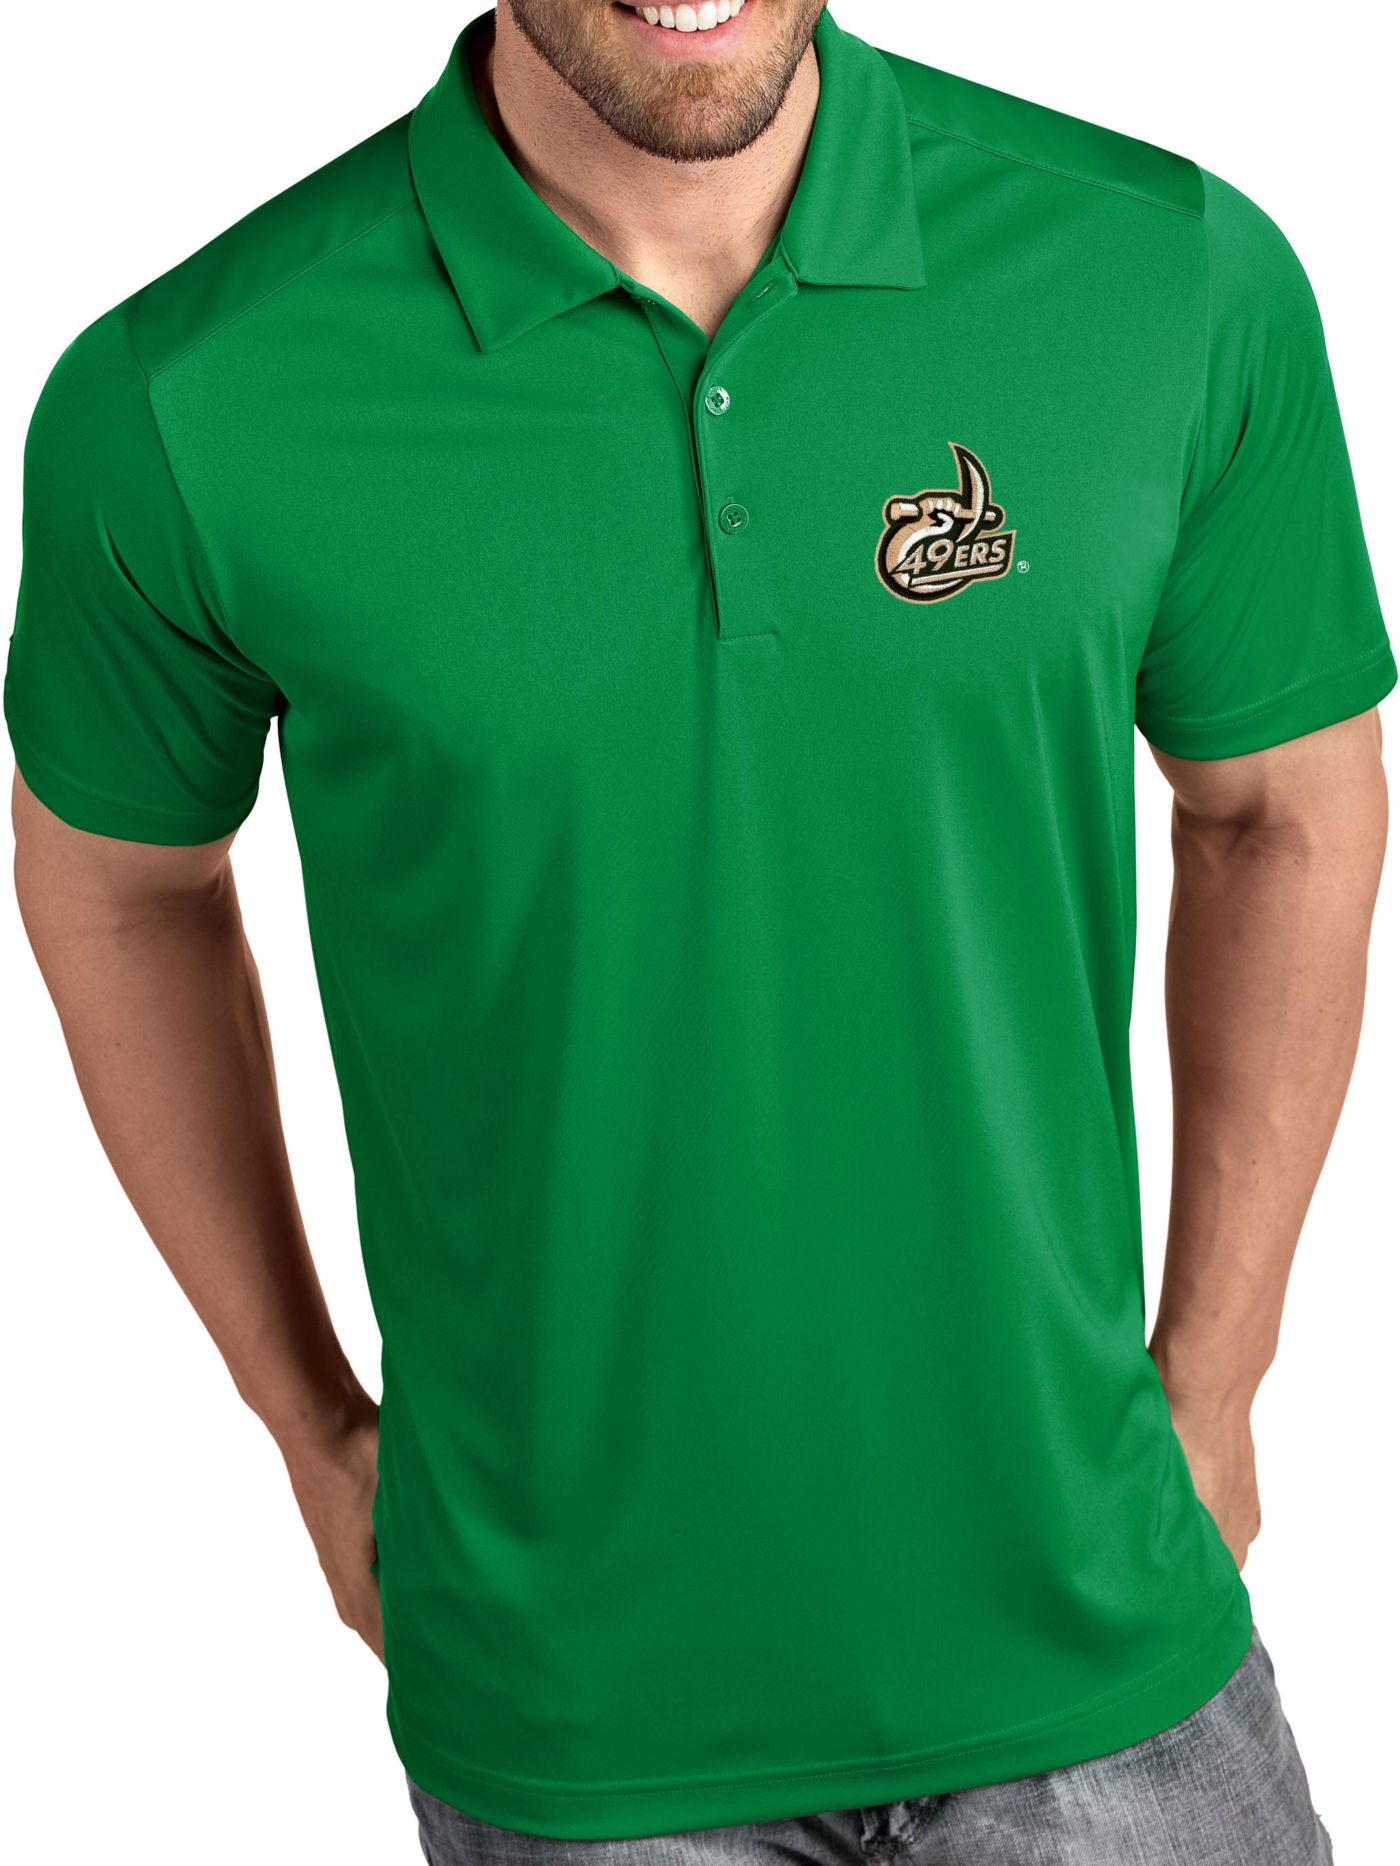 Antigua Men's Charlotte 49ers Green Tribute Performance Polo